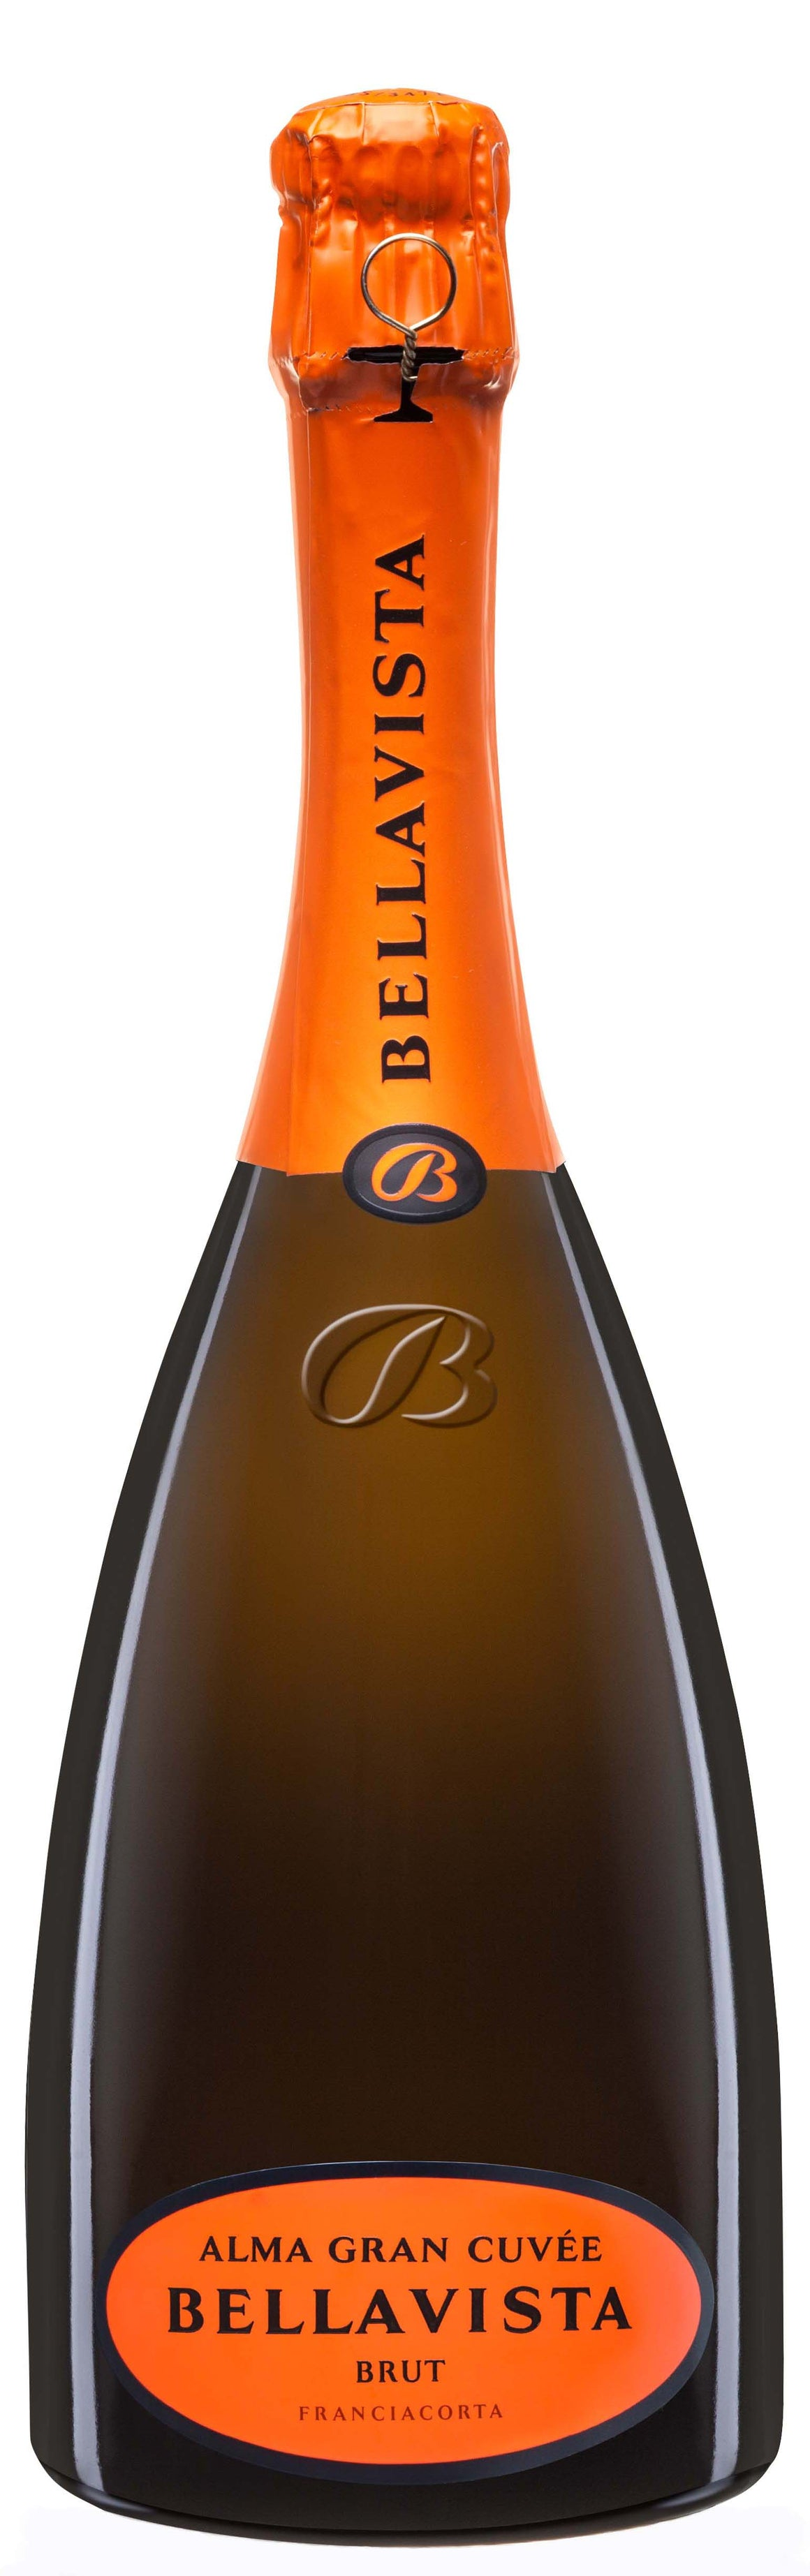 Bellavista 'Alma' Gran Cuvee Brut NV - Case of 6